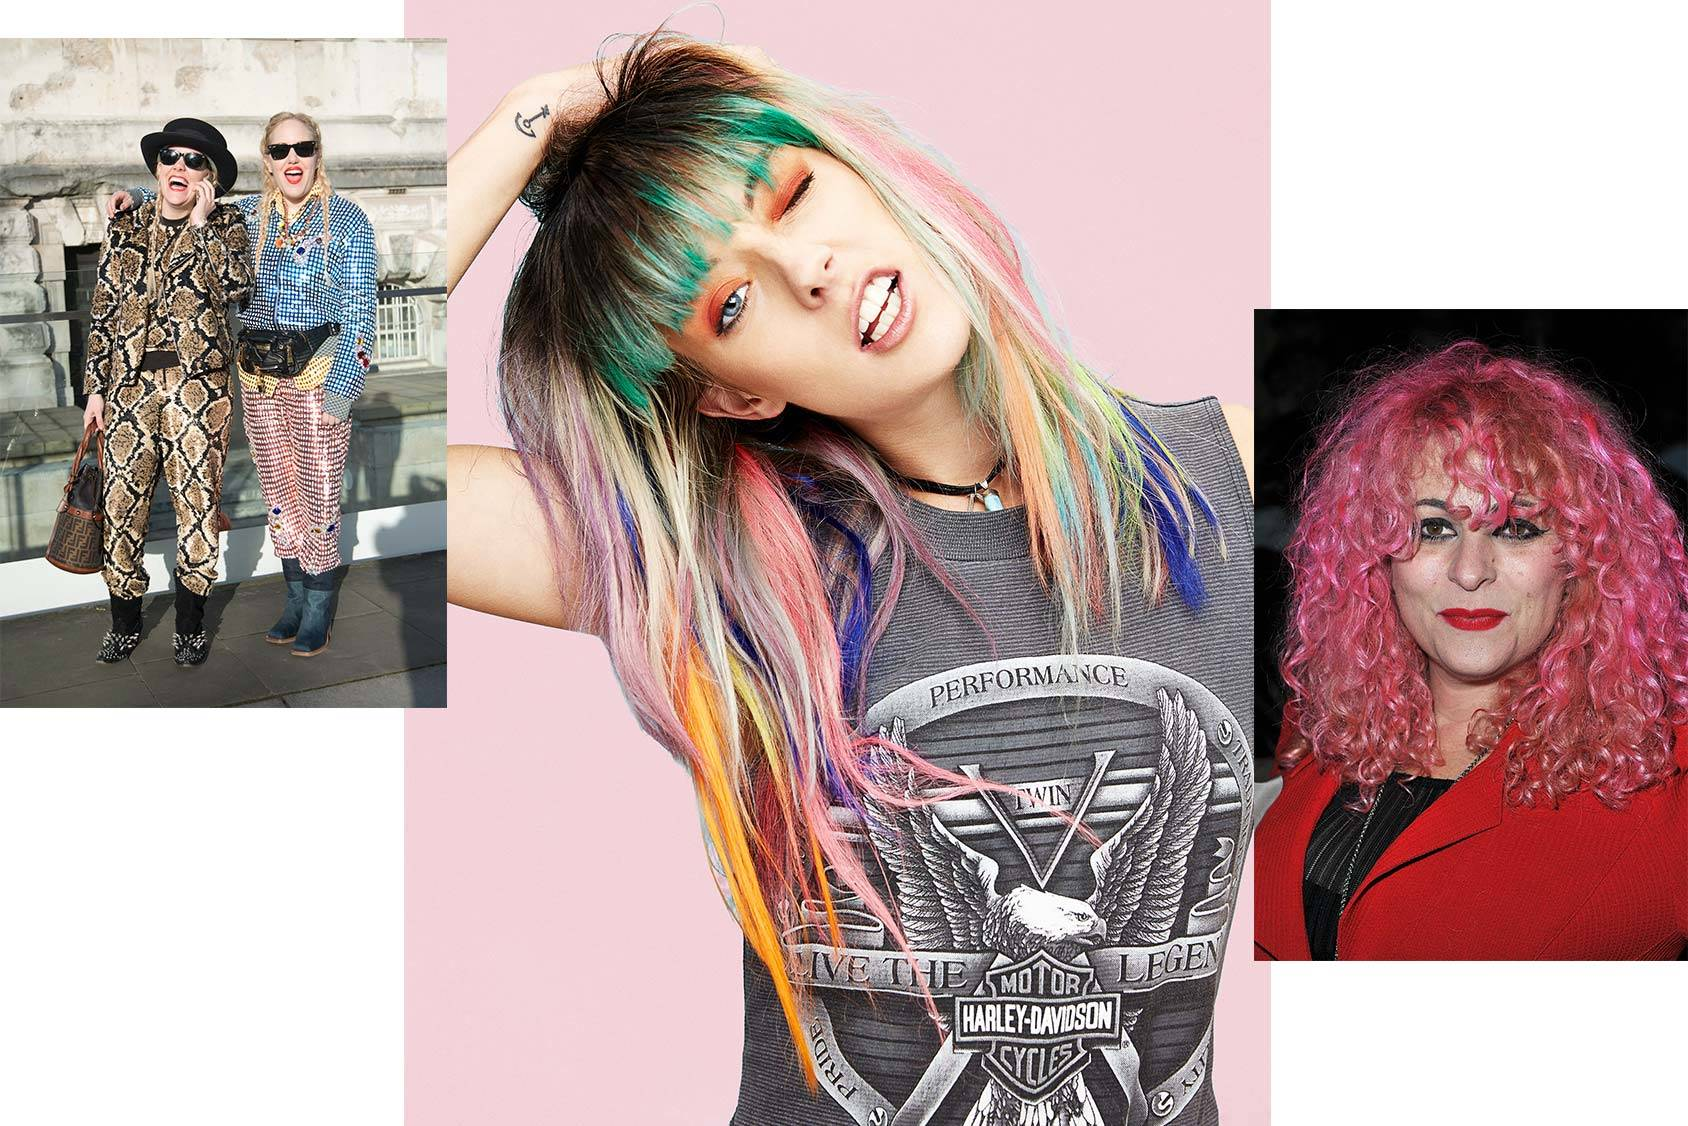 Chloe Norgaard follows the Beckerman sisters and Lyndell Mansfield, Getty Images/Justin Polkey.